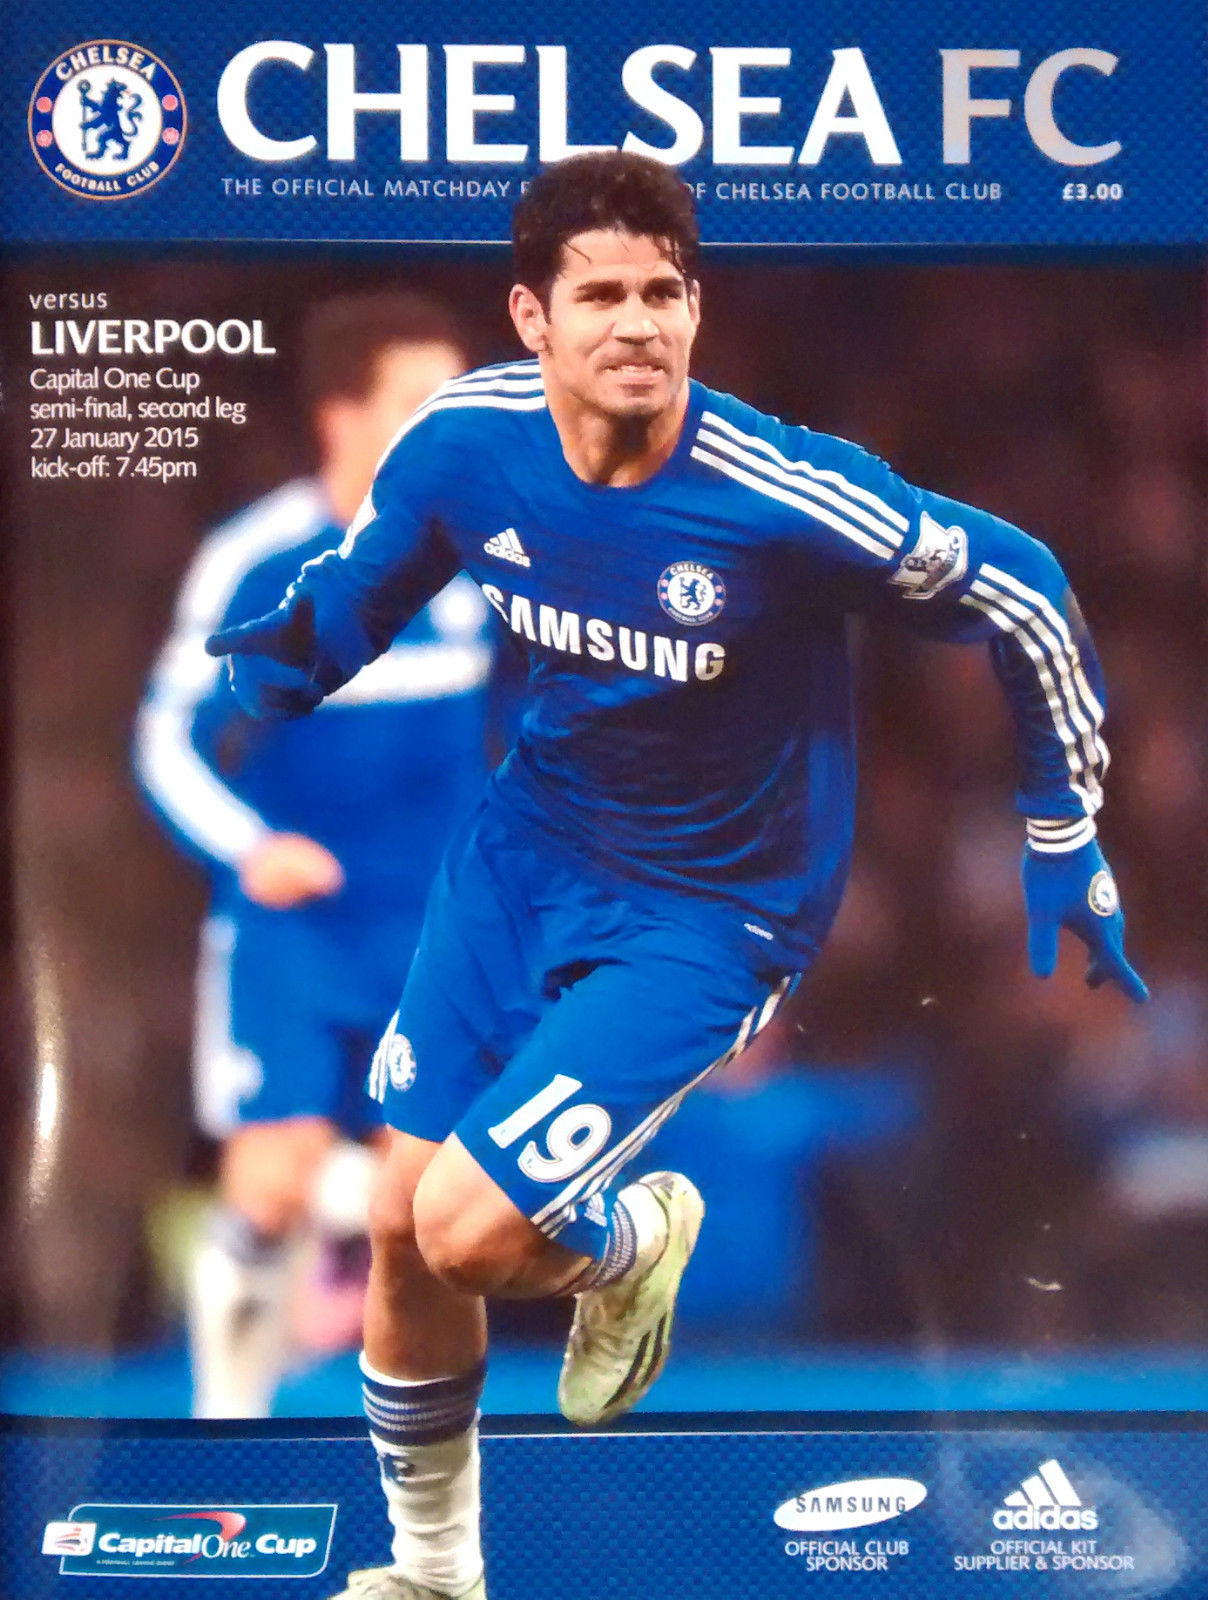 2015 CAPITAL ONE CUP SEMI-FINAL - CHELSEA v LIVERPOOL